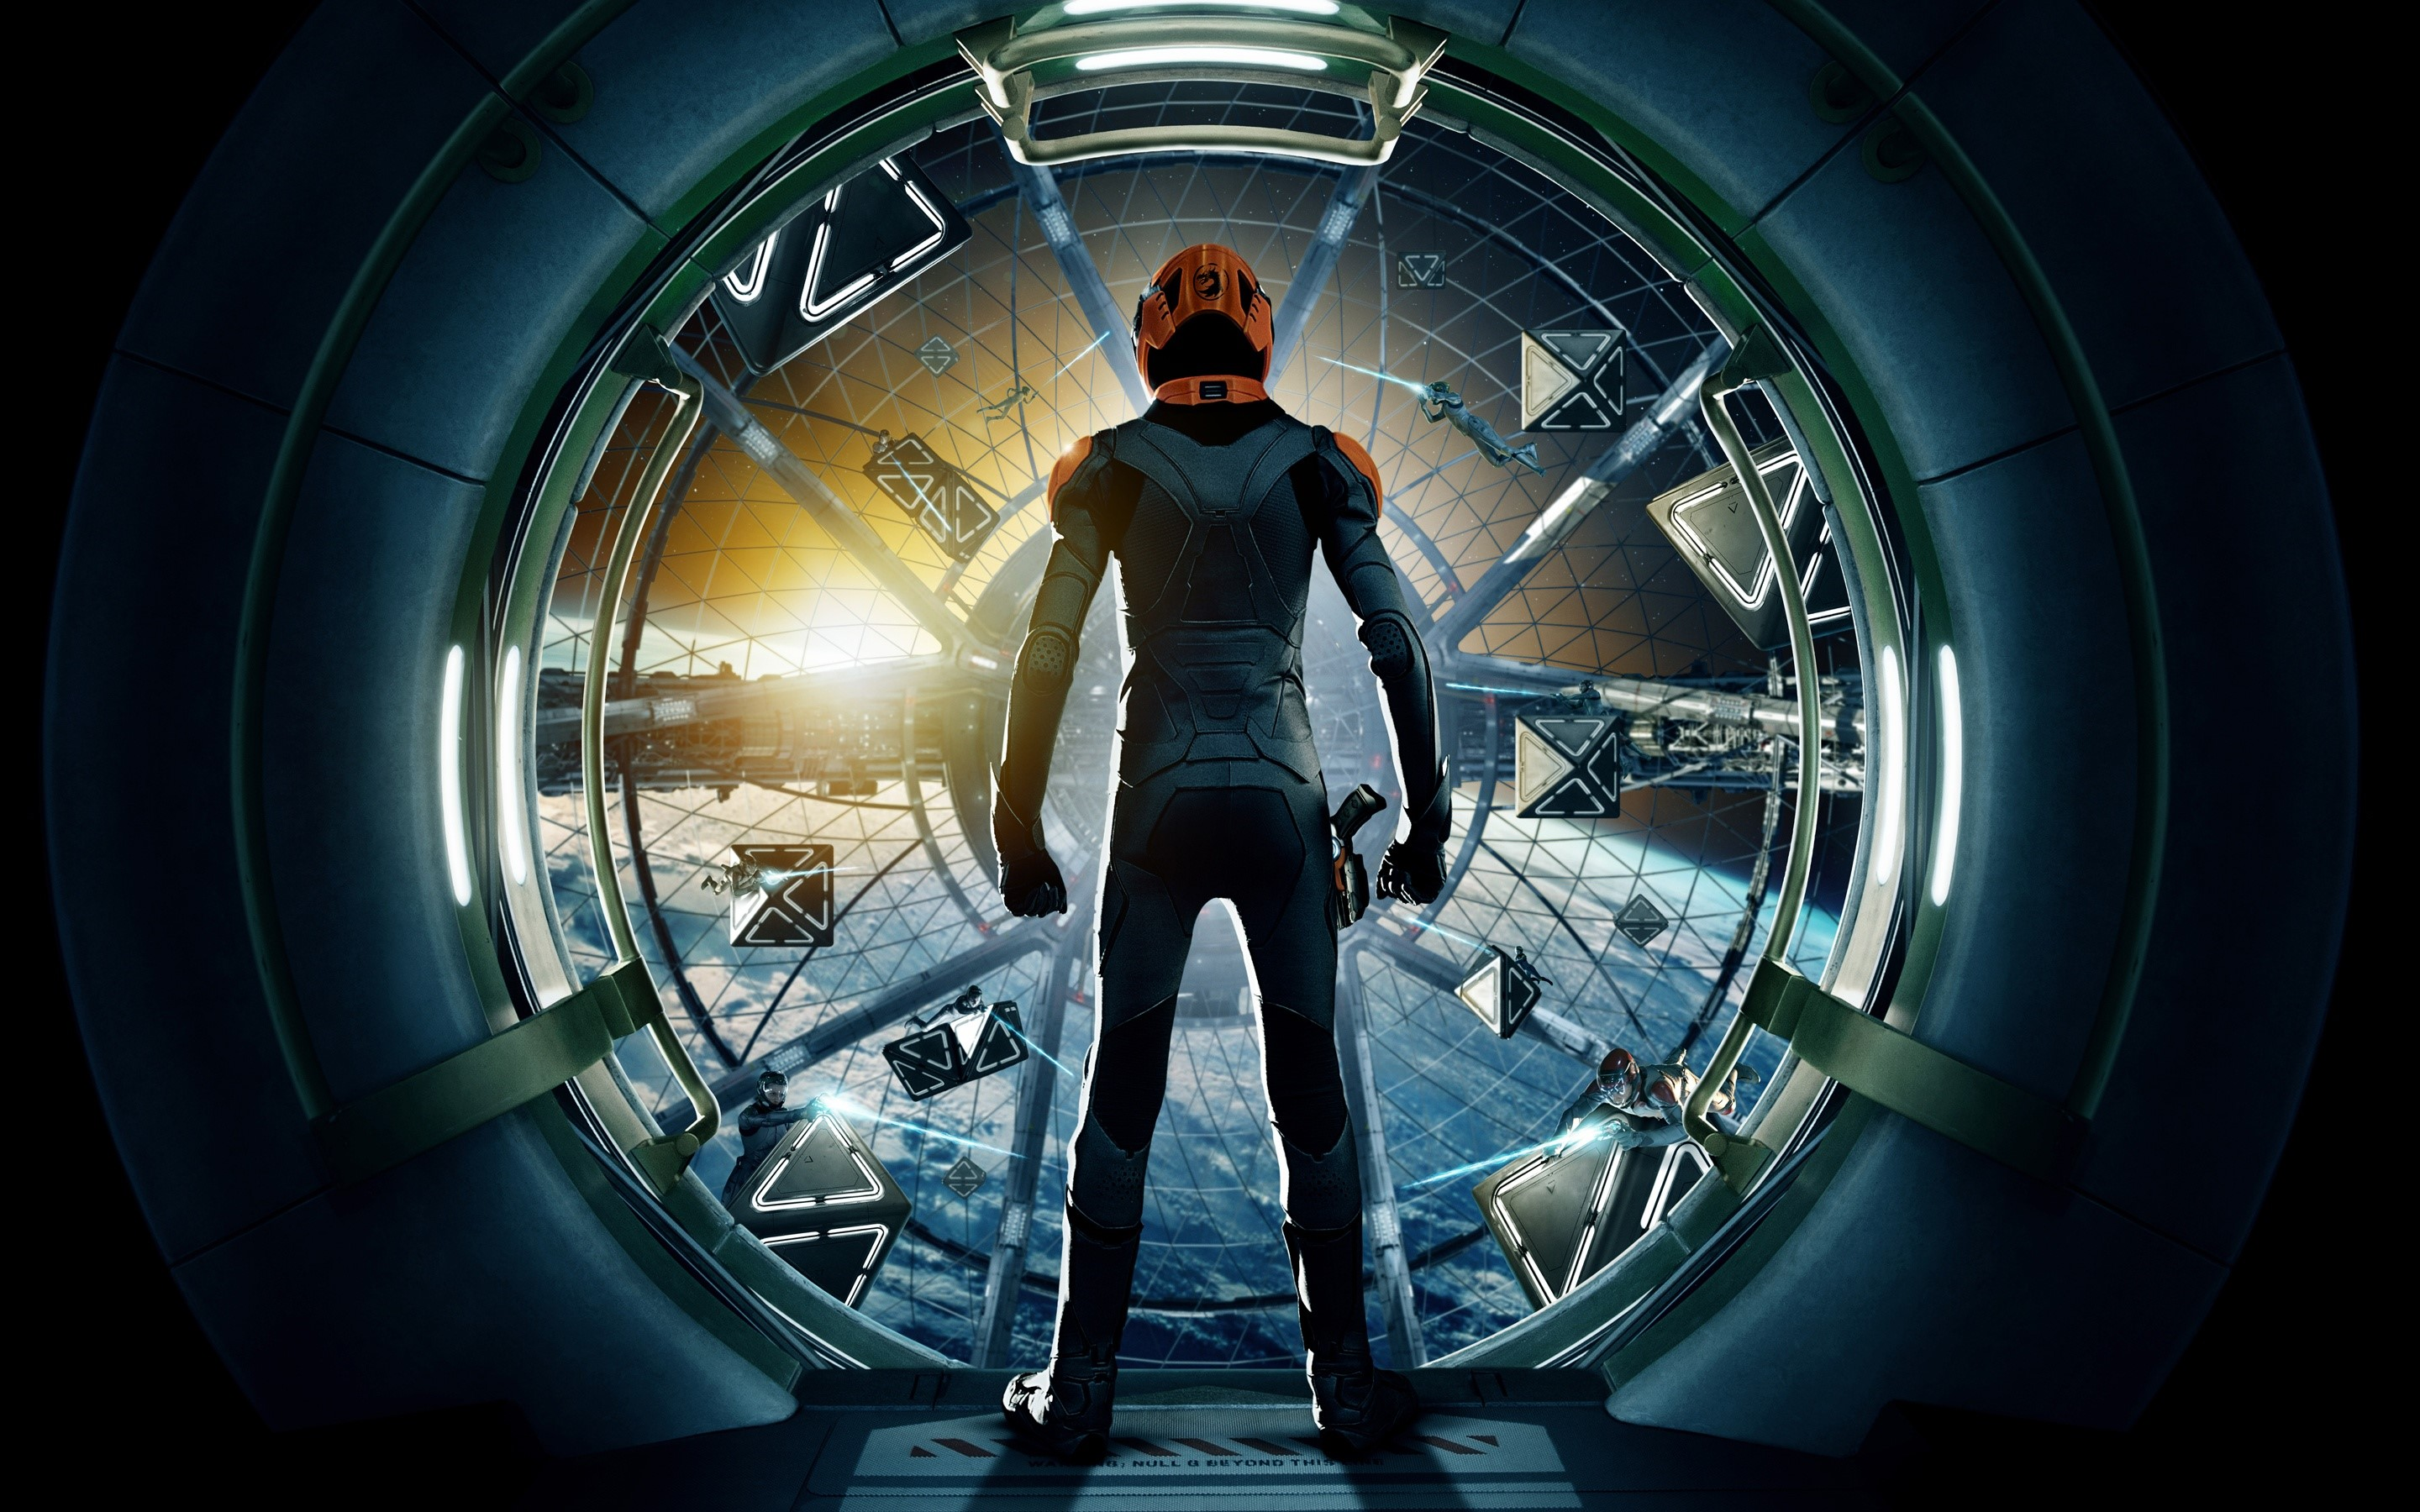 Wallpaper Película Enders Game Images